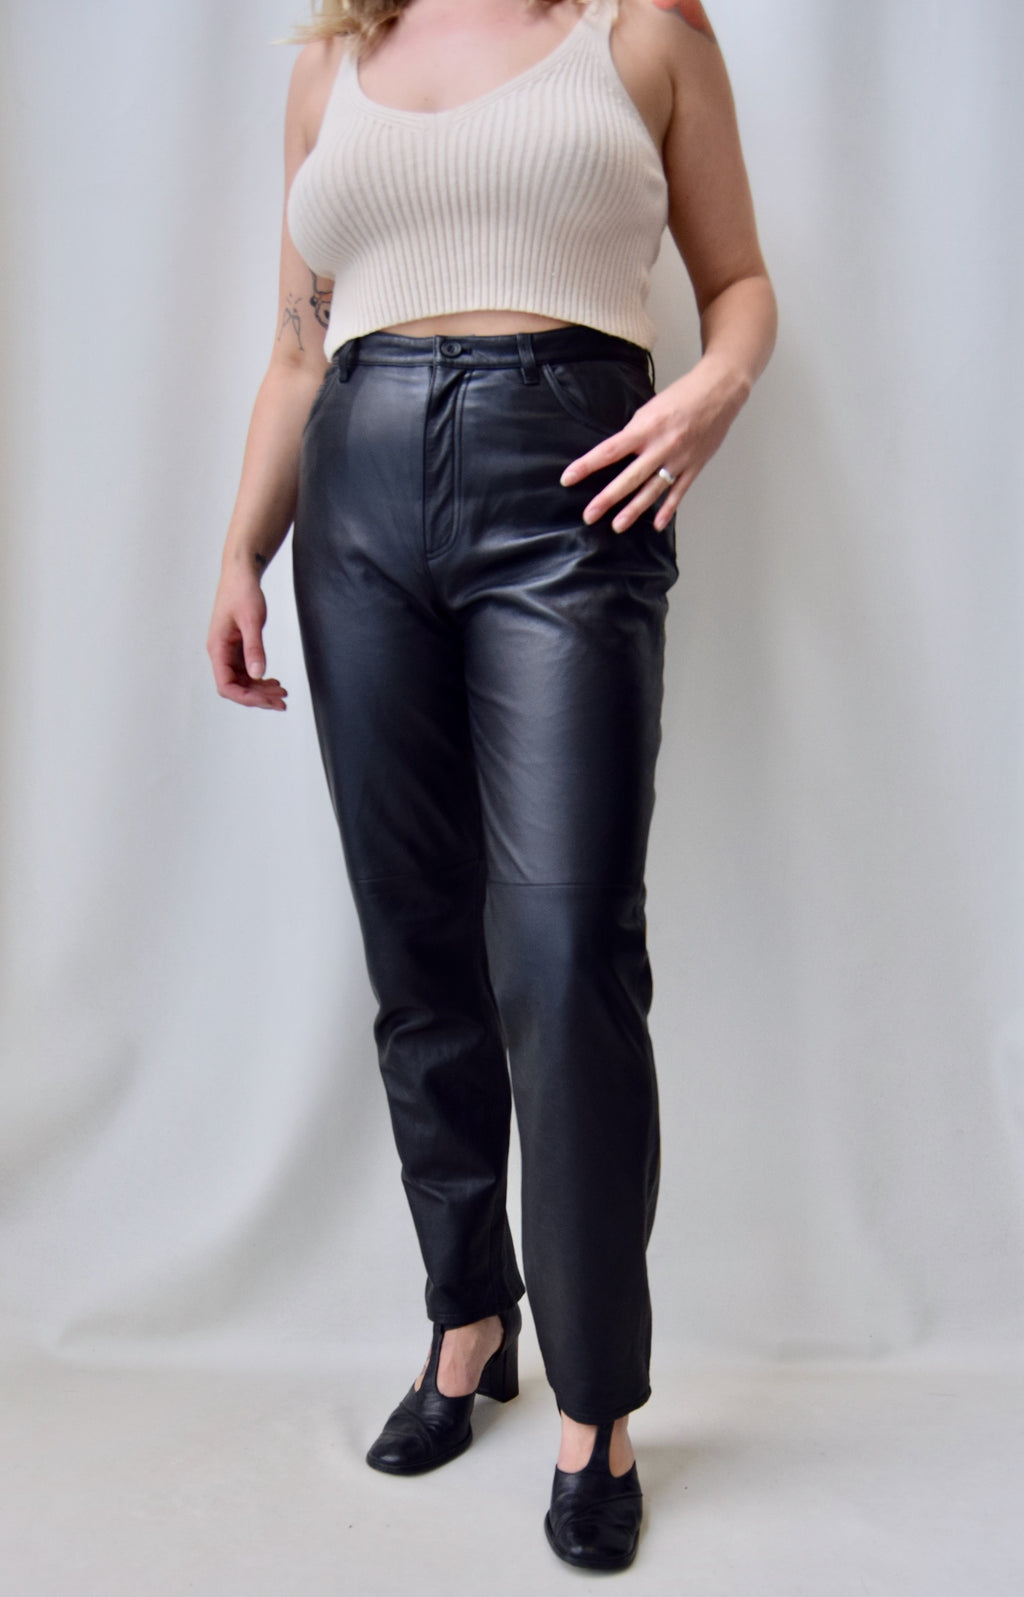 Nineties Soft Black Leather Pants